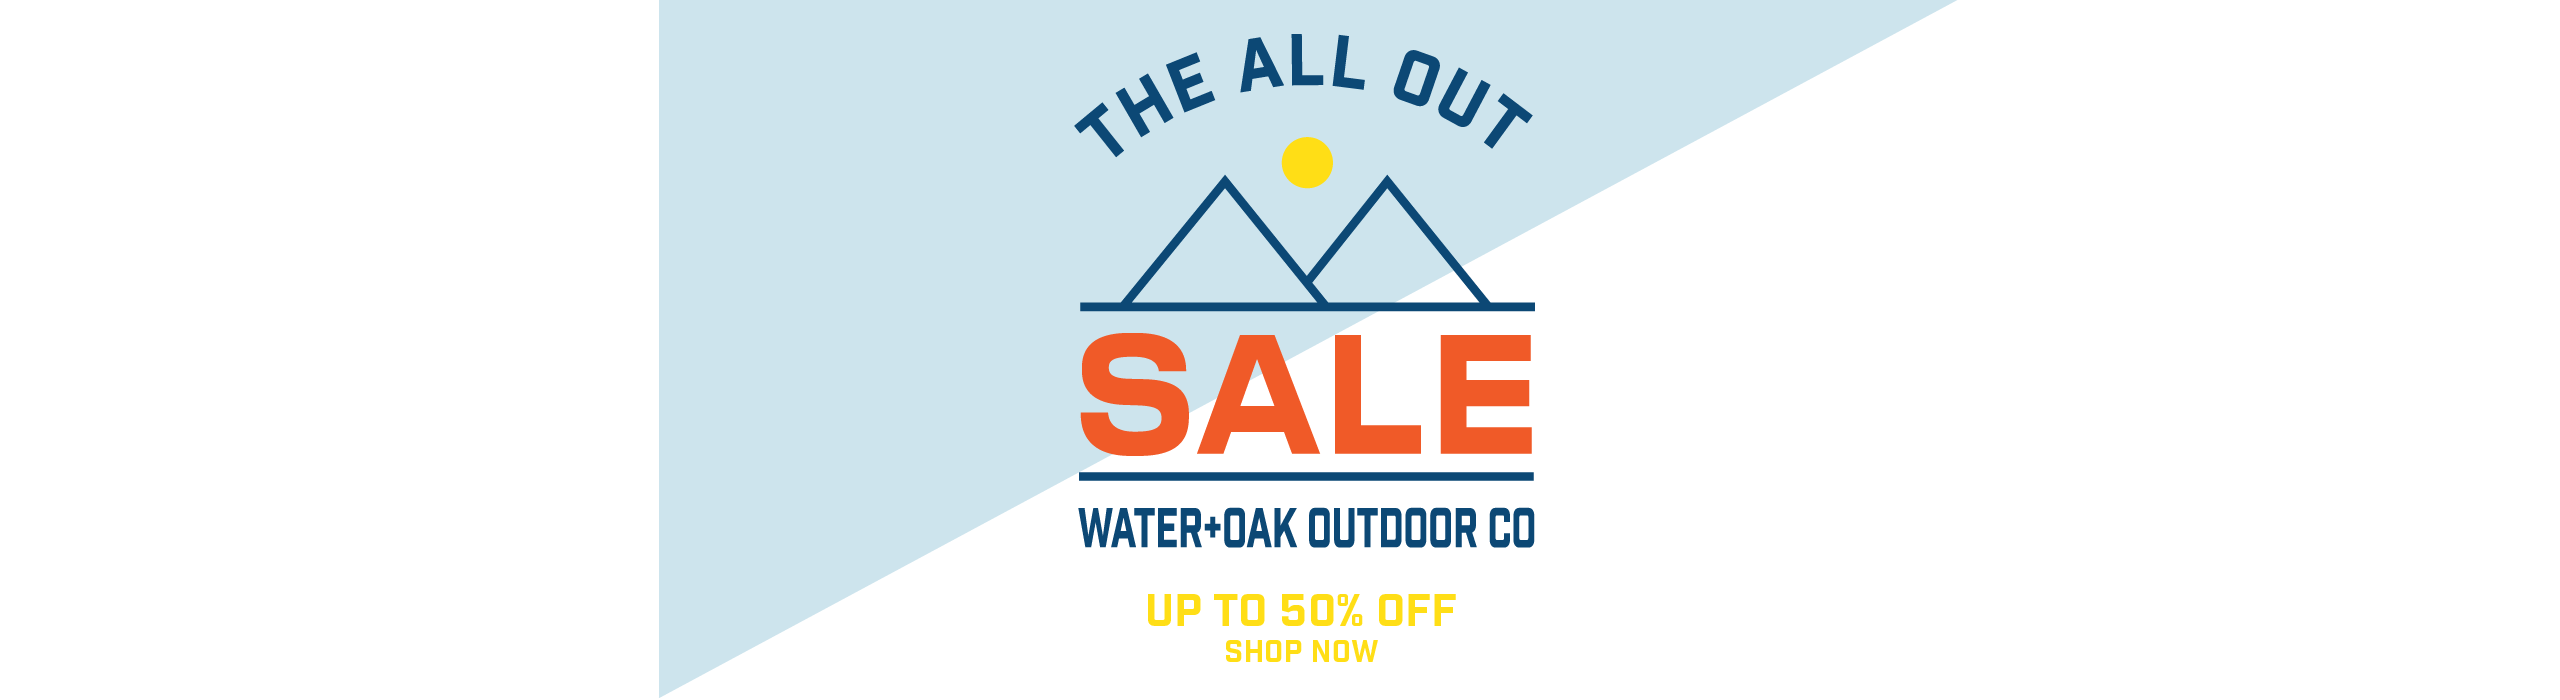 b9c27a8dd Outdoor Lifestyle Clothing & Gear Outfitter - Water and Oak Outdoor ...